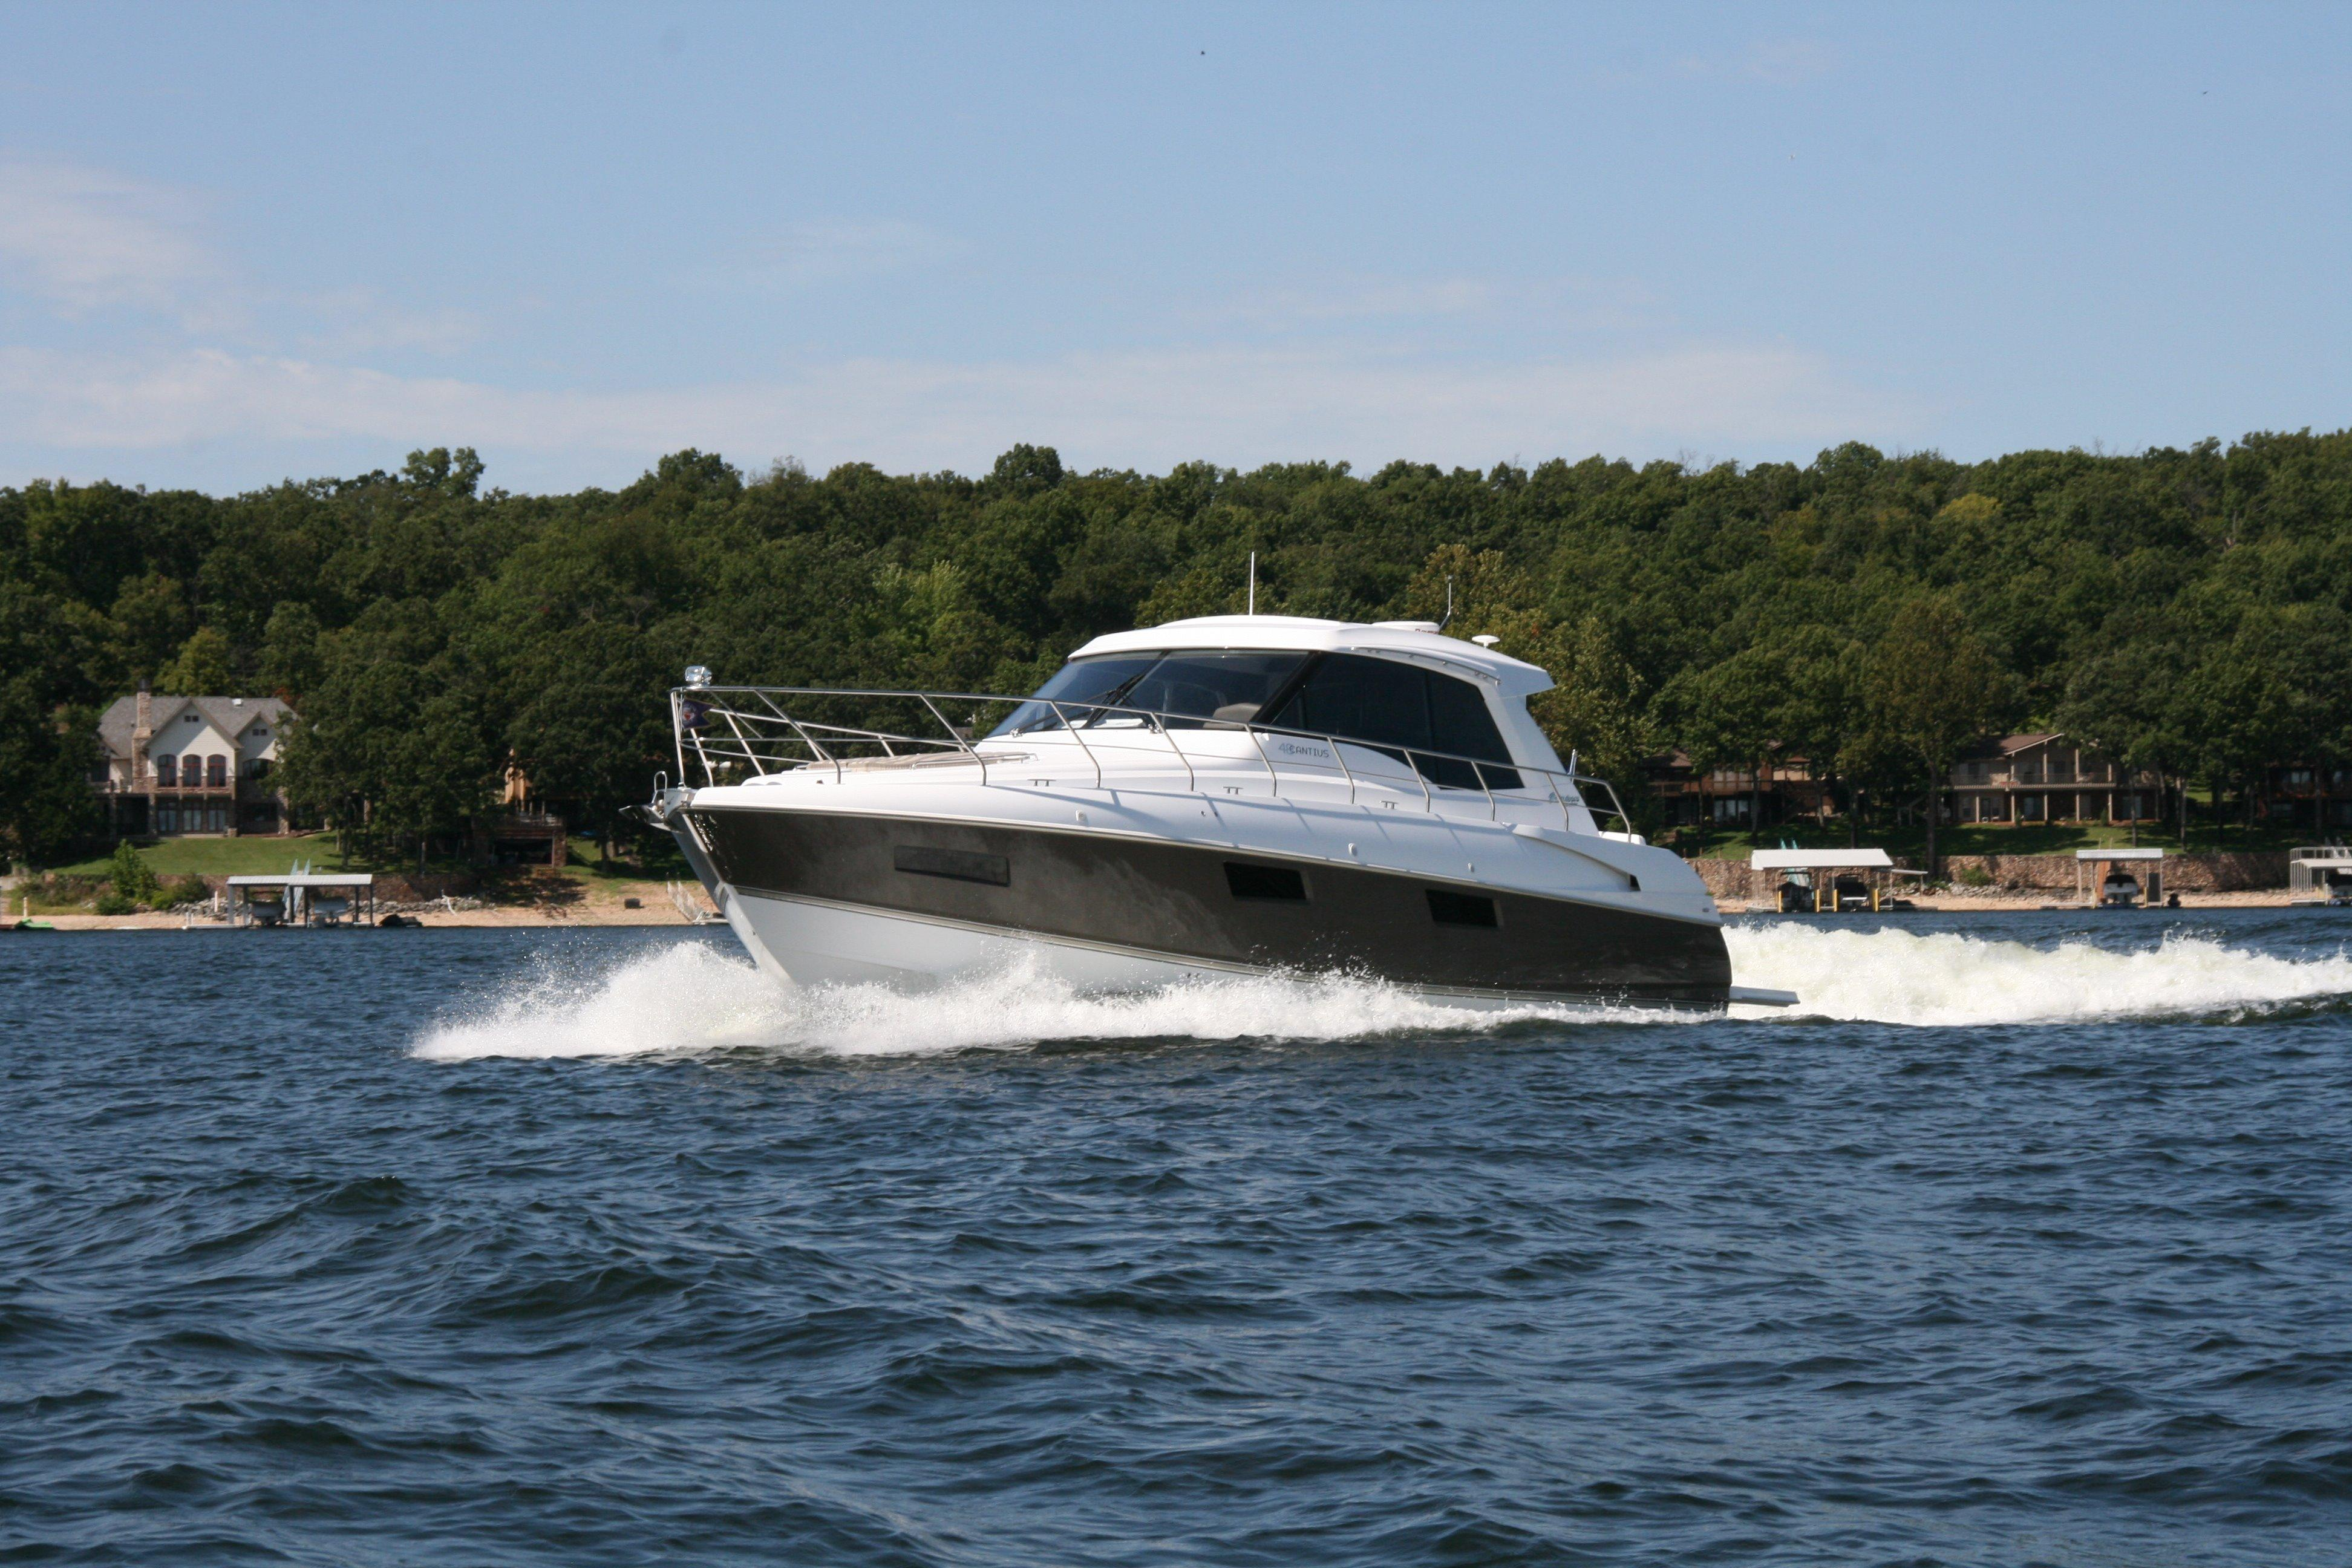 Used Cruisers Yachts For Sale From 45 To 50 Feet